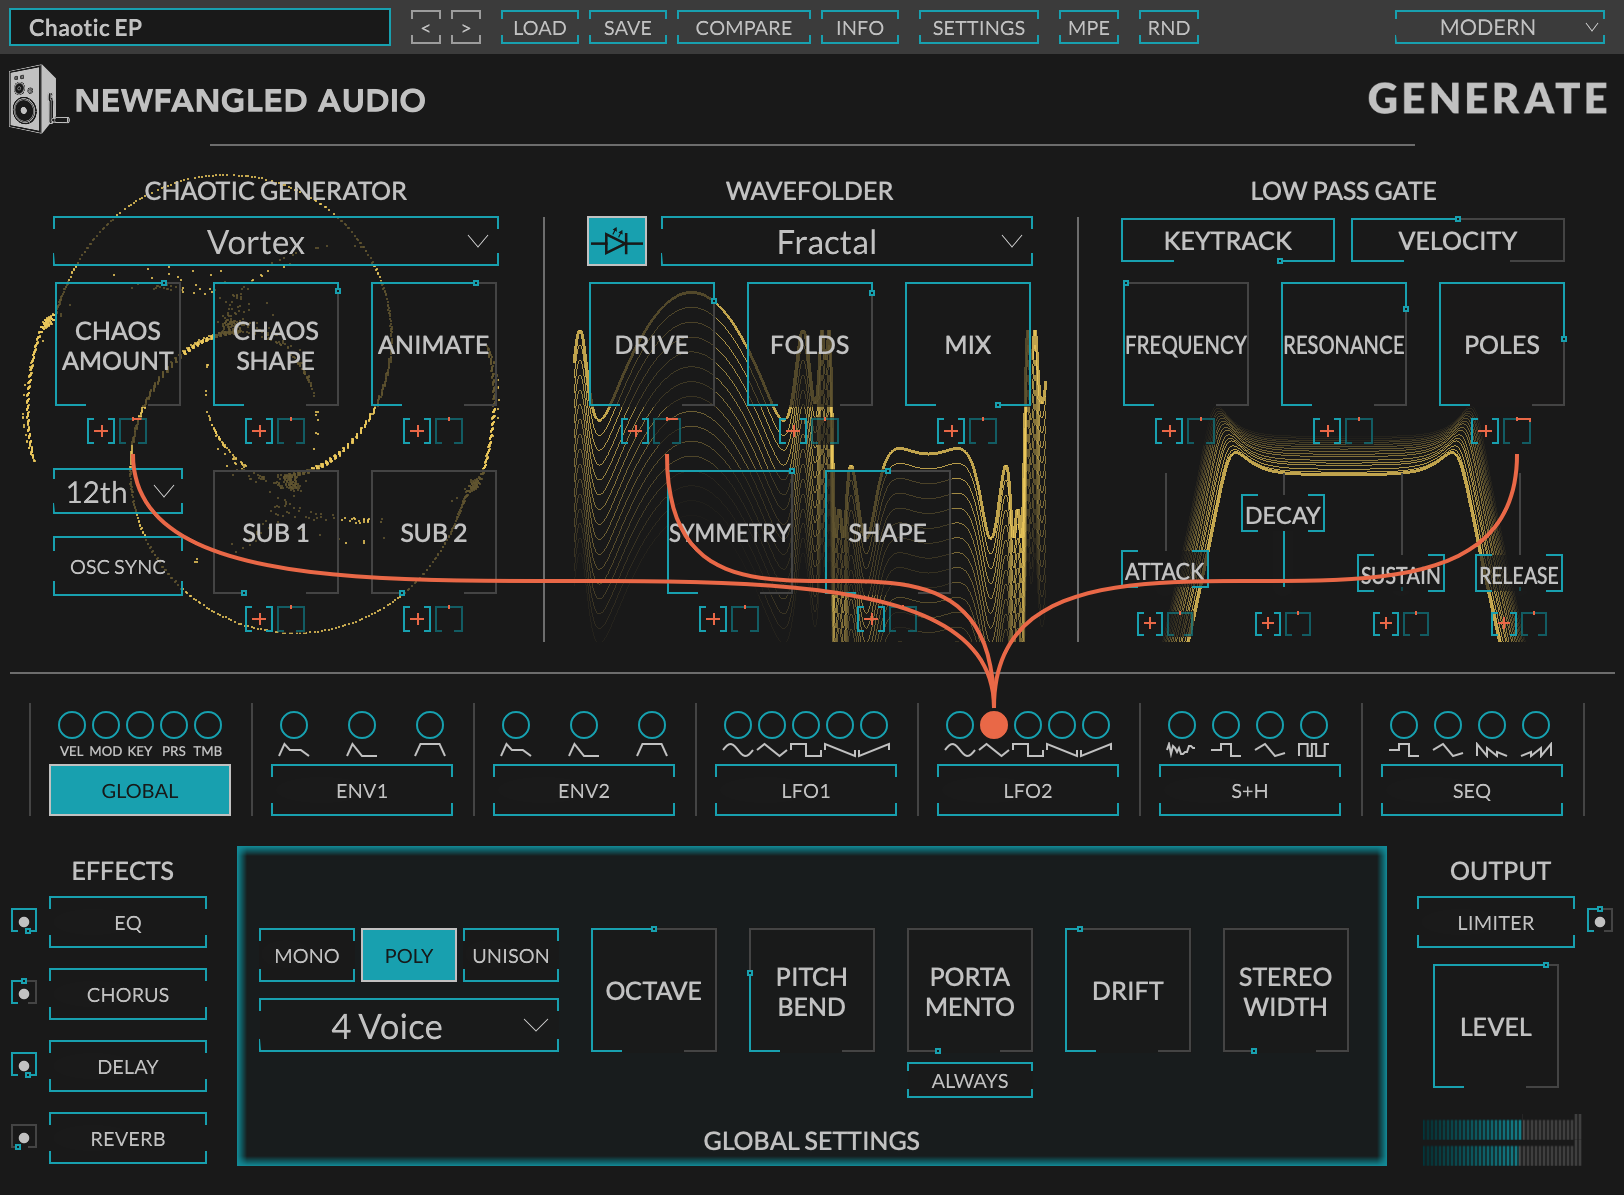 Newfangled Audio Generate Polyphonic virtual synth plugin vst aax chaos oscillator